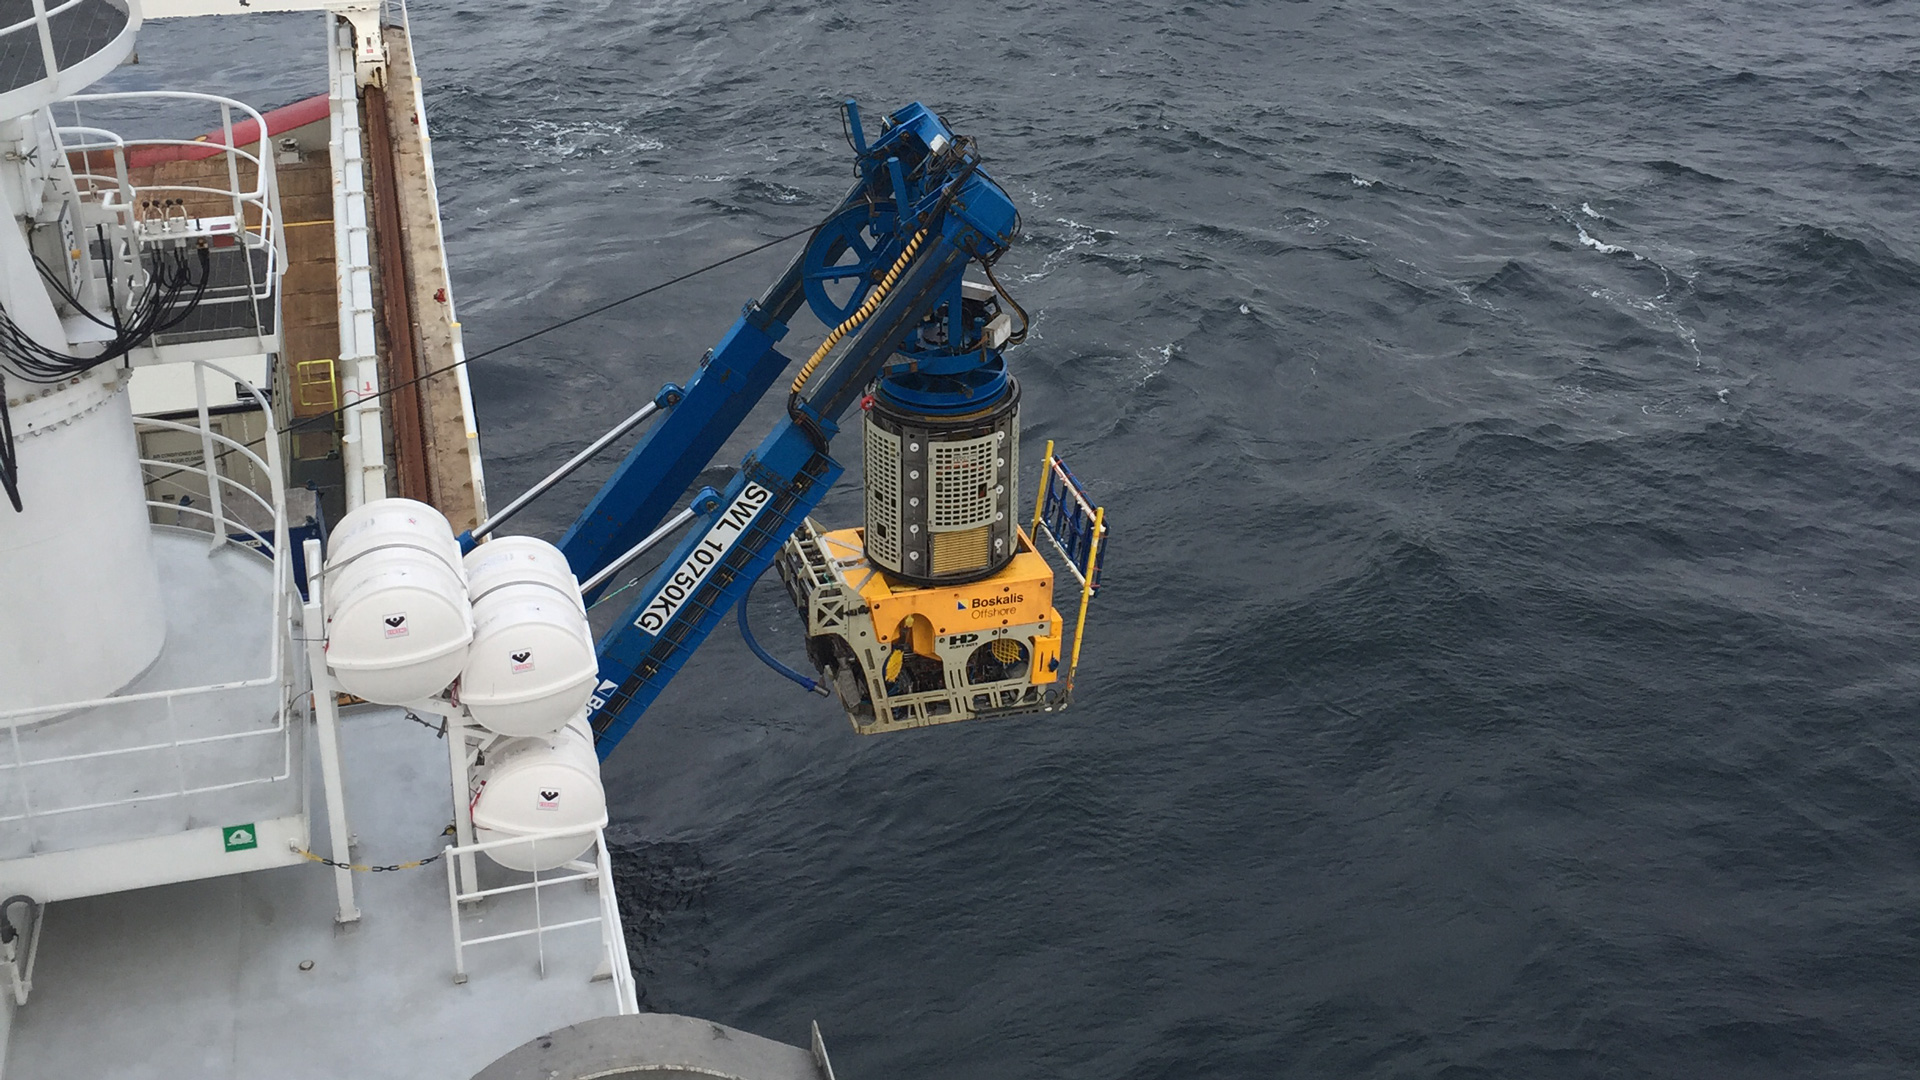 Launching of the remotely operated vehicle at Horns Rev 3